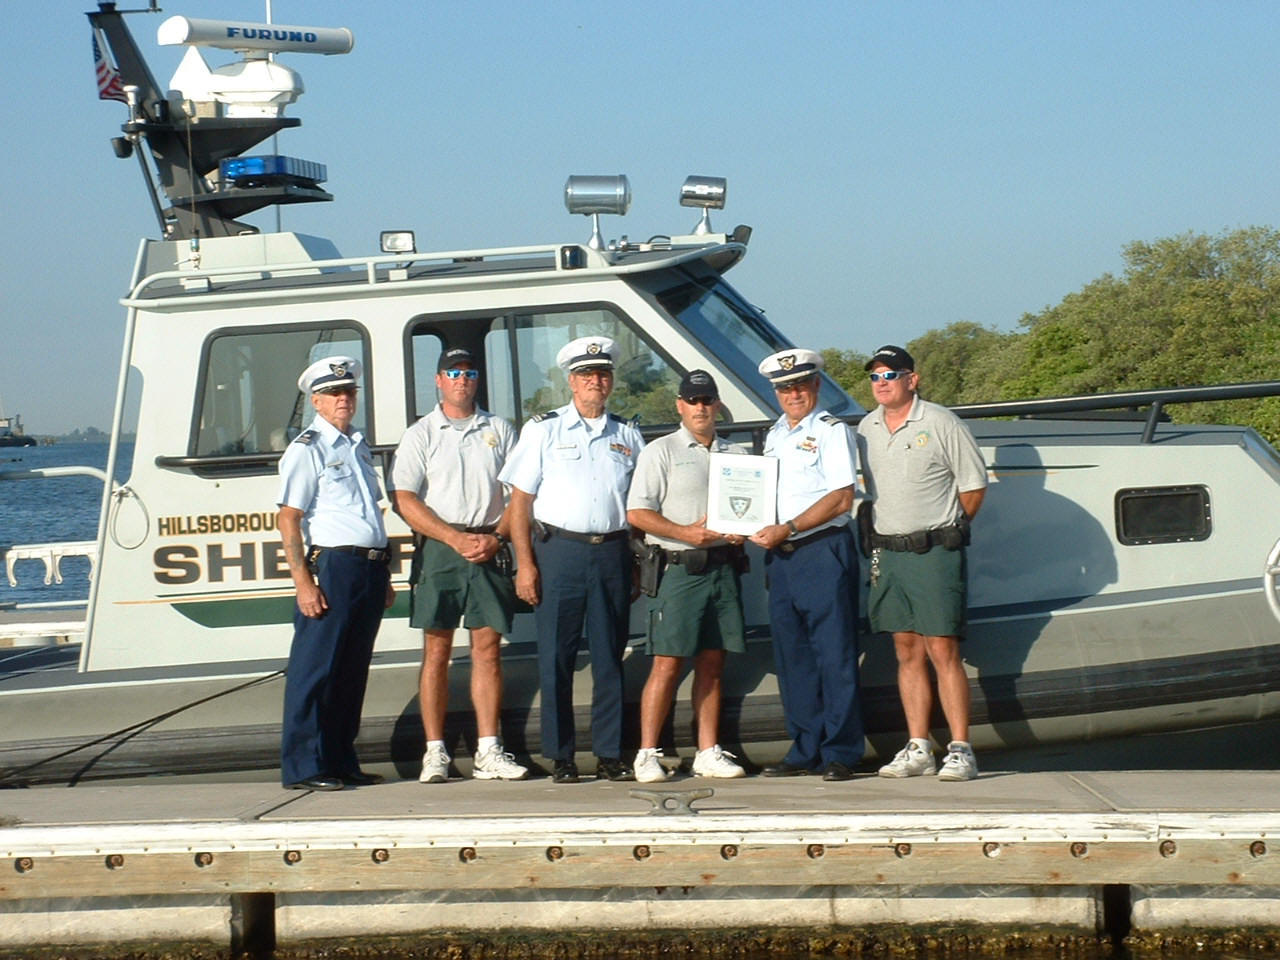 Presenting the Hillsborough County Sheriffs Patrol with a 60th Anniversary Vessel Inspection Plaque